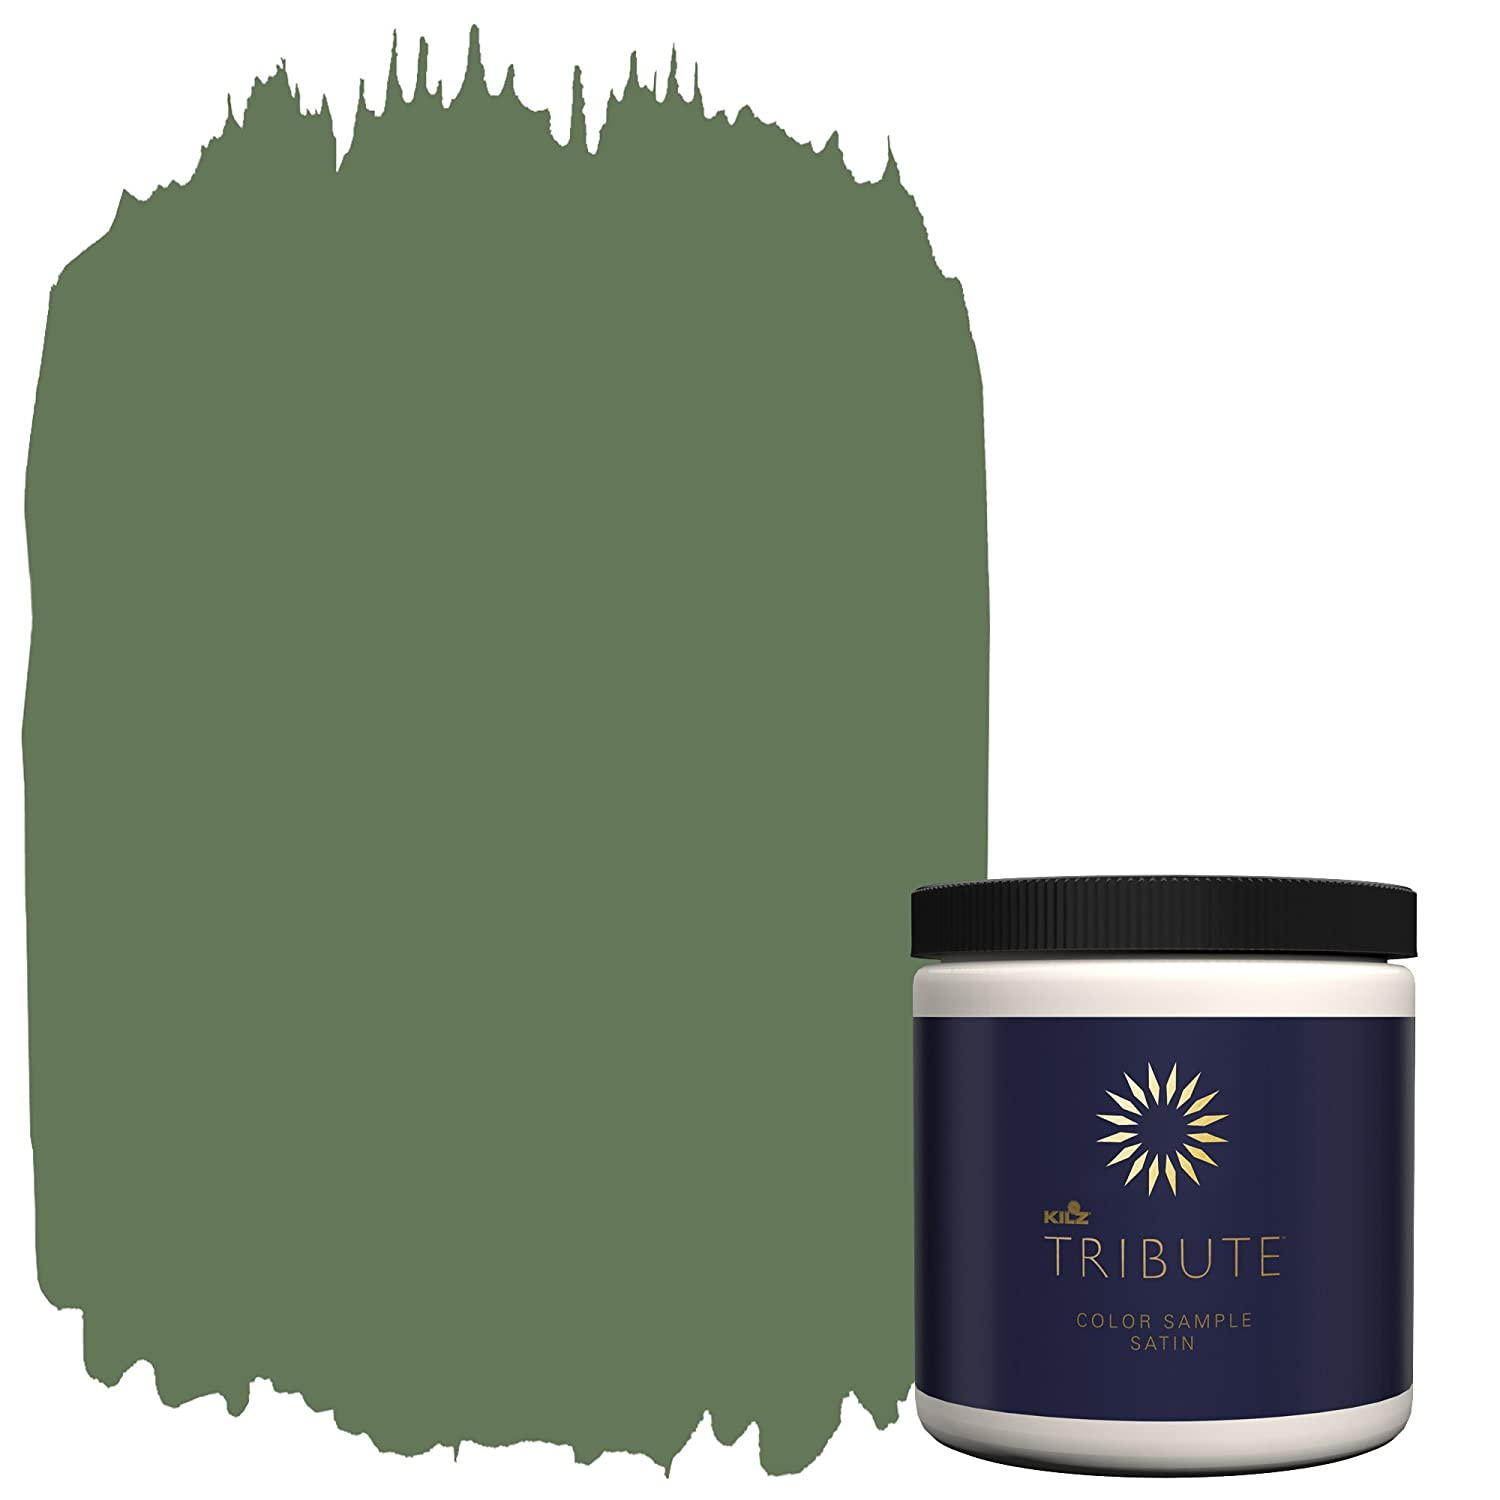 KILZ TRIBUTE Interior Satin Paint & Primer In One,8-Ounce Sample, Peaceful Forest (TB-80)